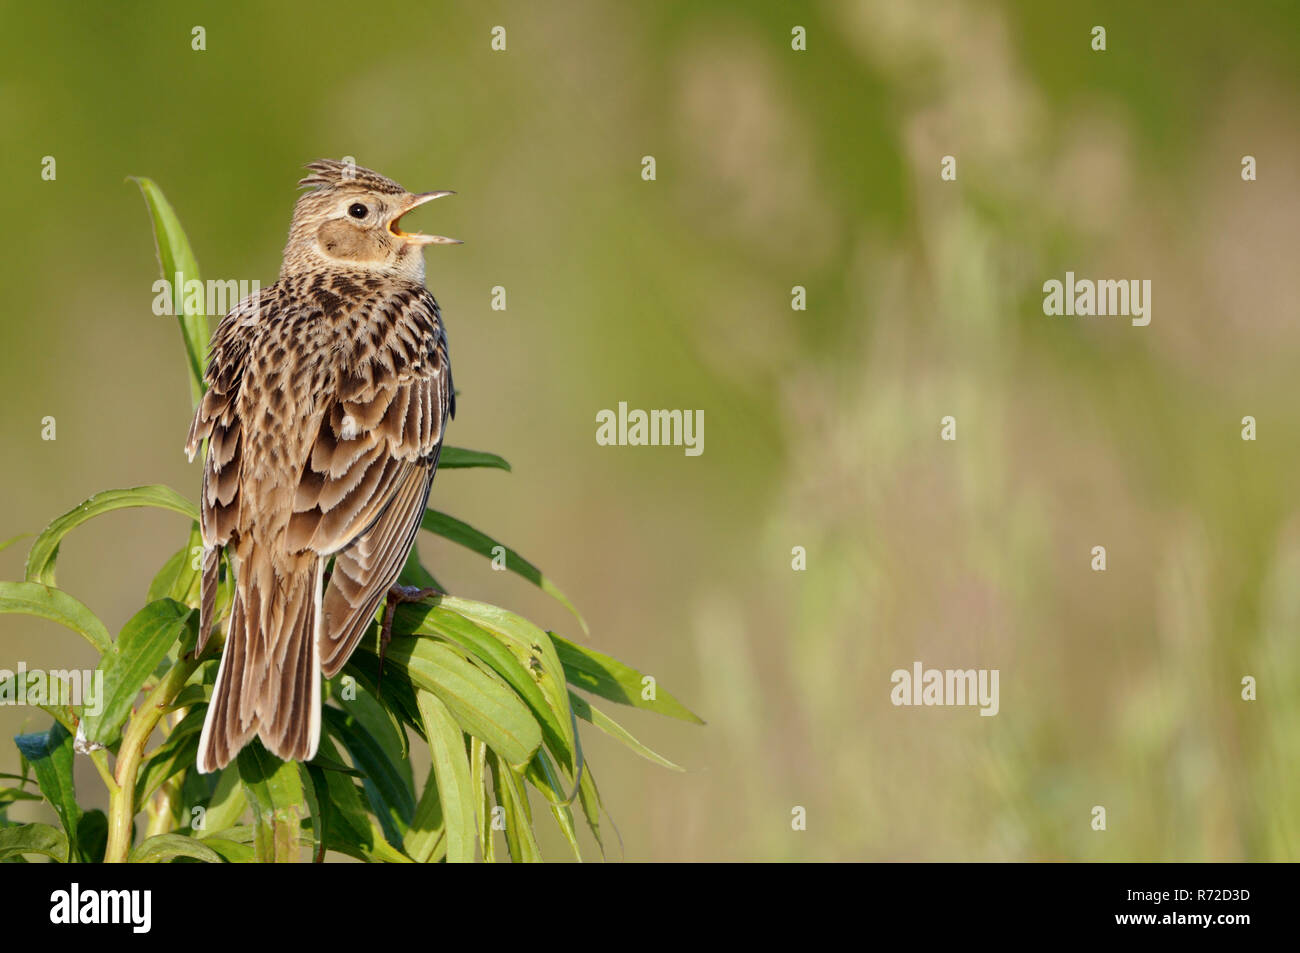 Skylark / Feldlerche ( Alauda arvensis ) perched on top of a plant, singing its typical song, nice backside view, wildlife, Europe. - Stock Image